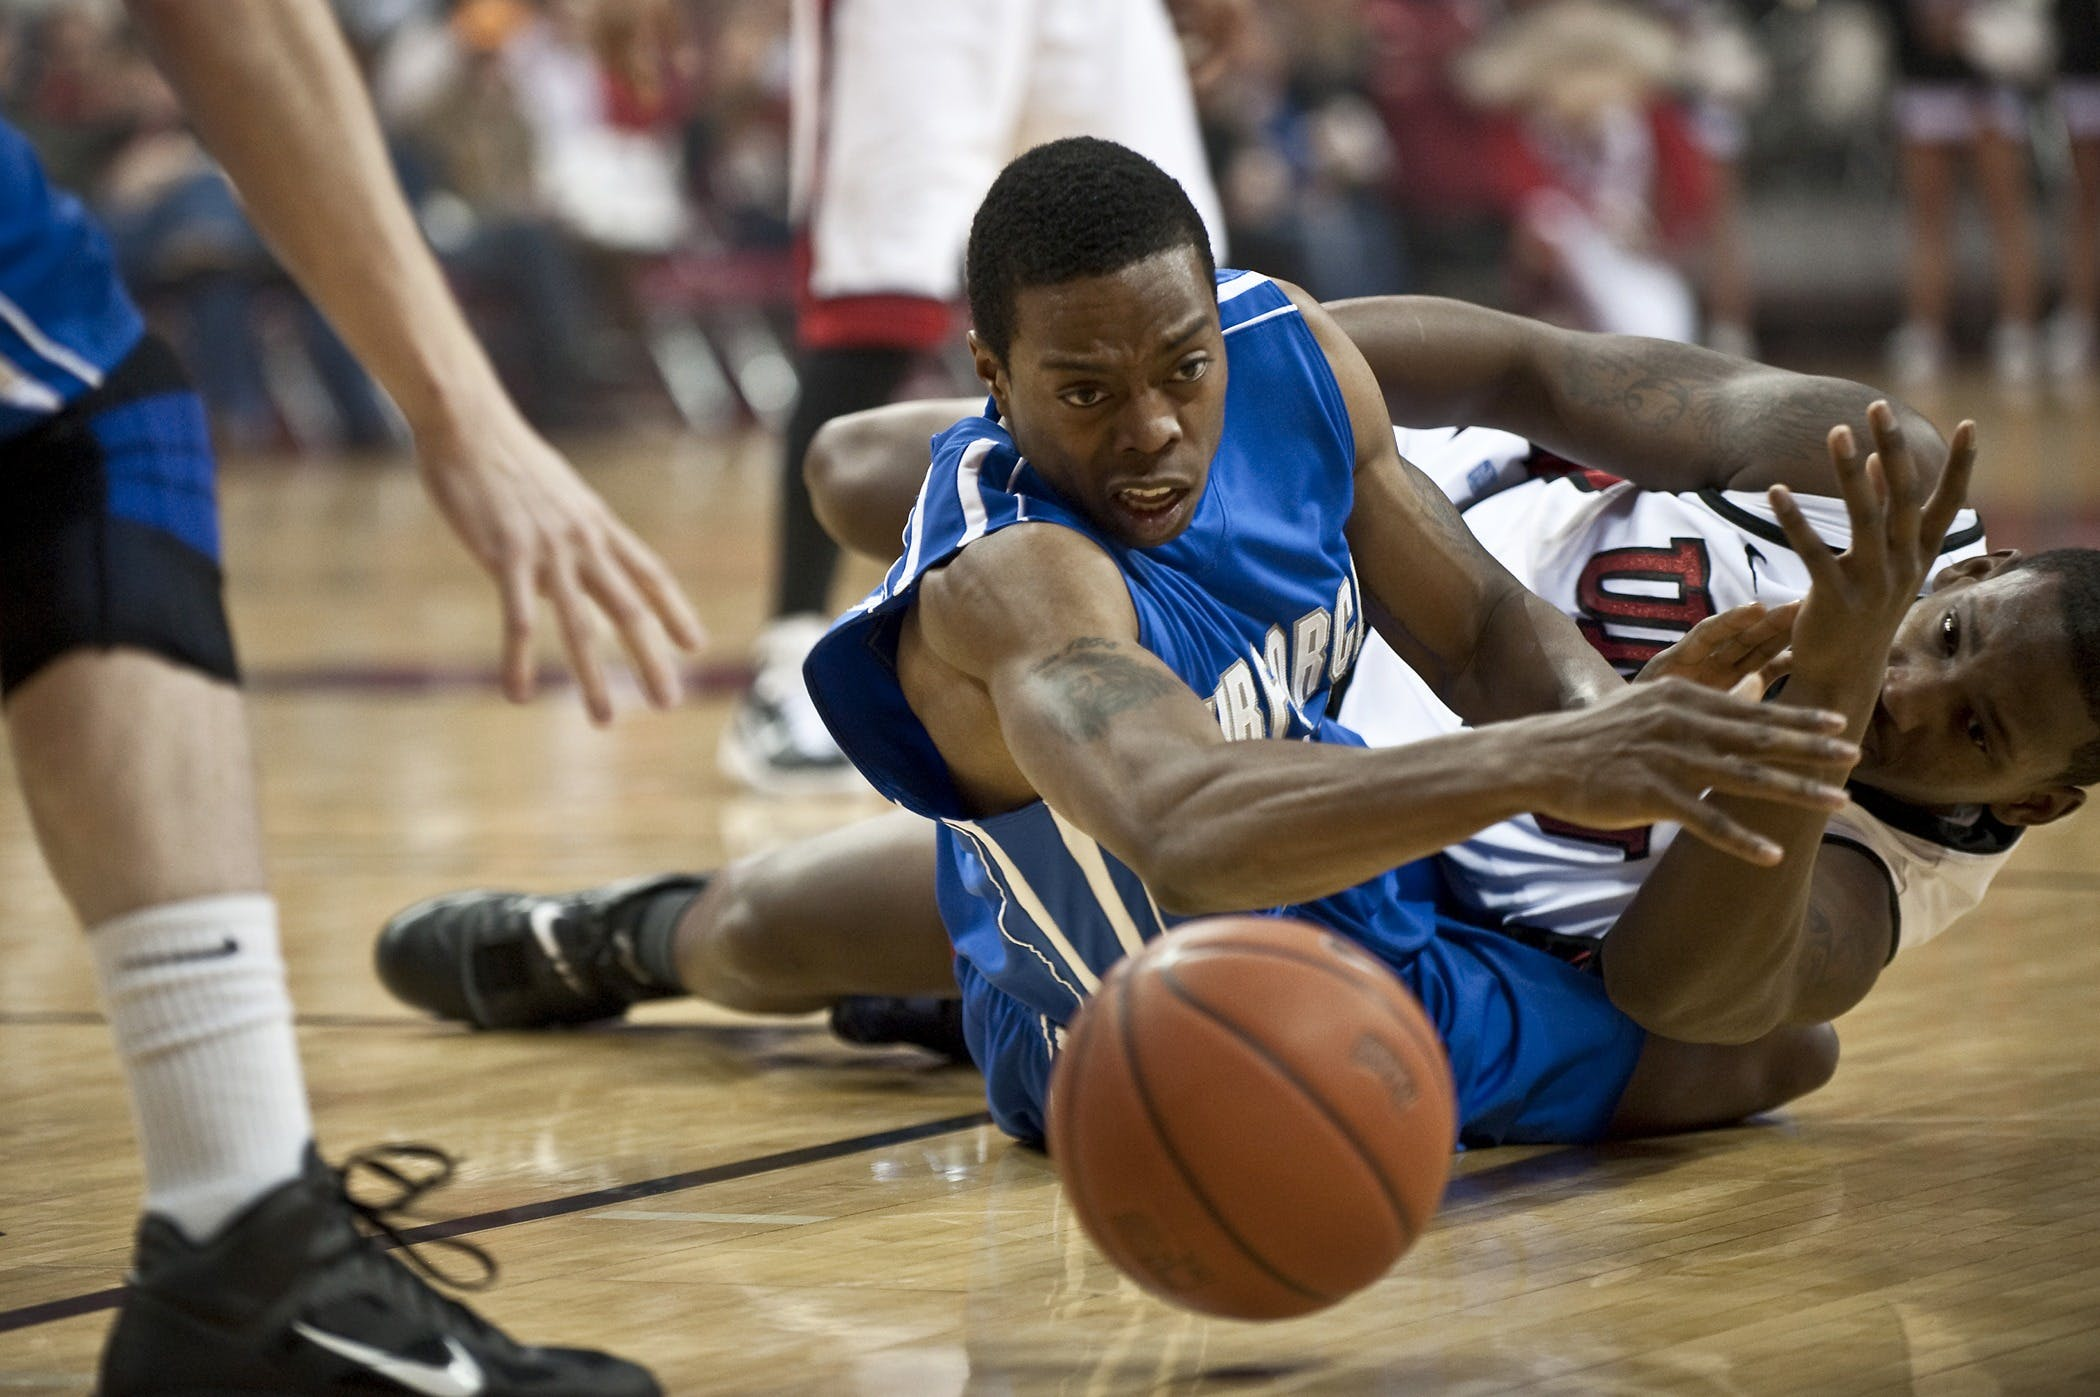 Two Basketball Players on Floor